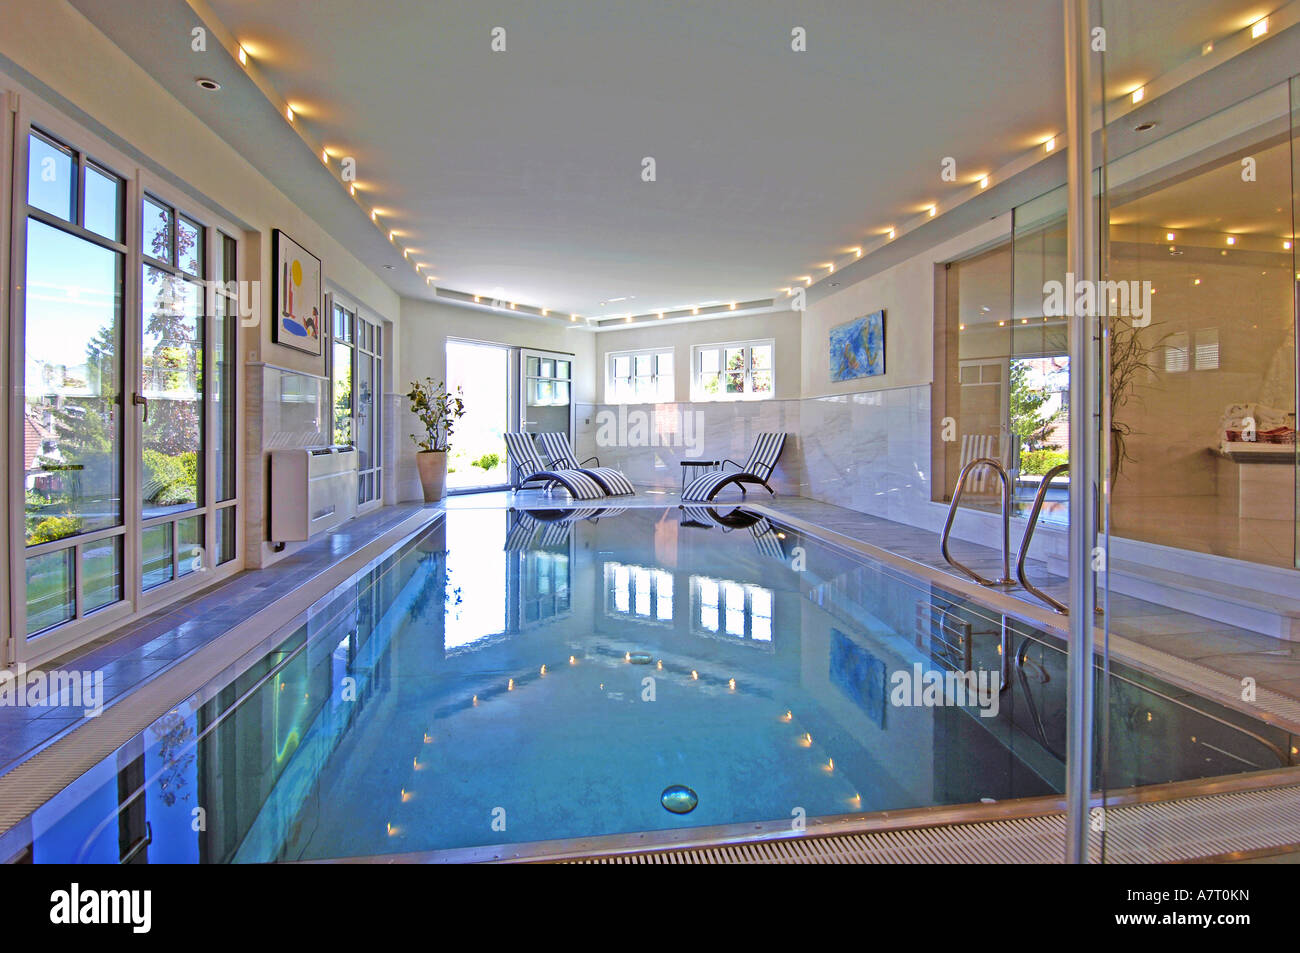 Swimming pool inside house Stock Photo: 11904488 - Alamy